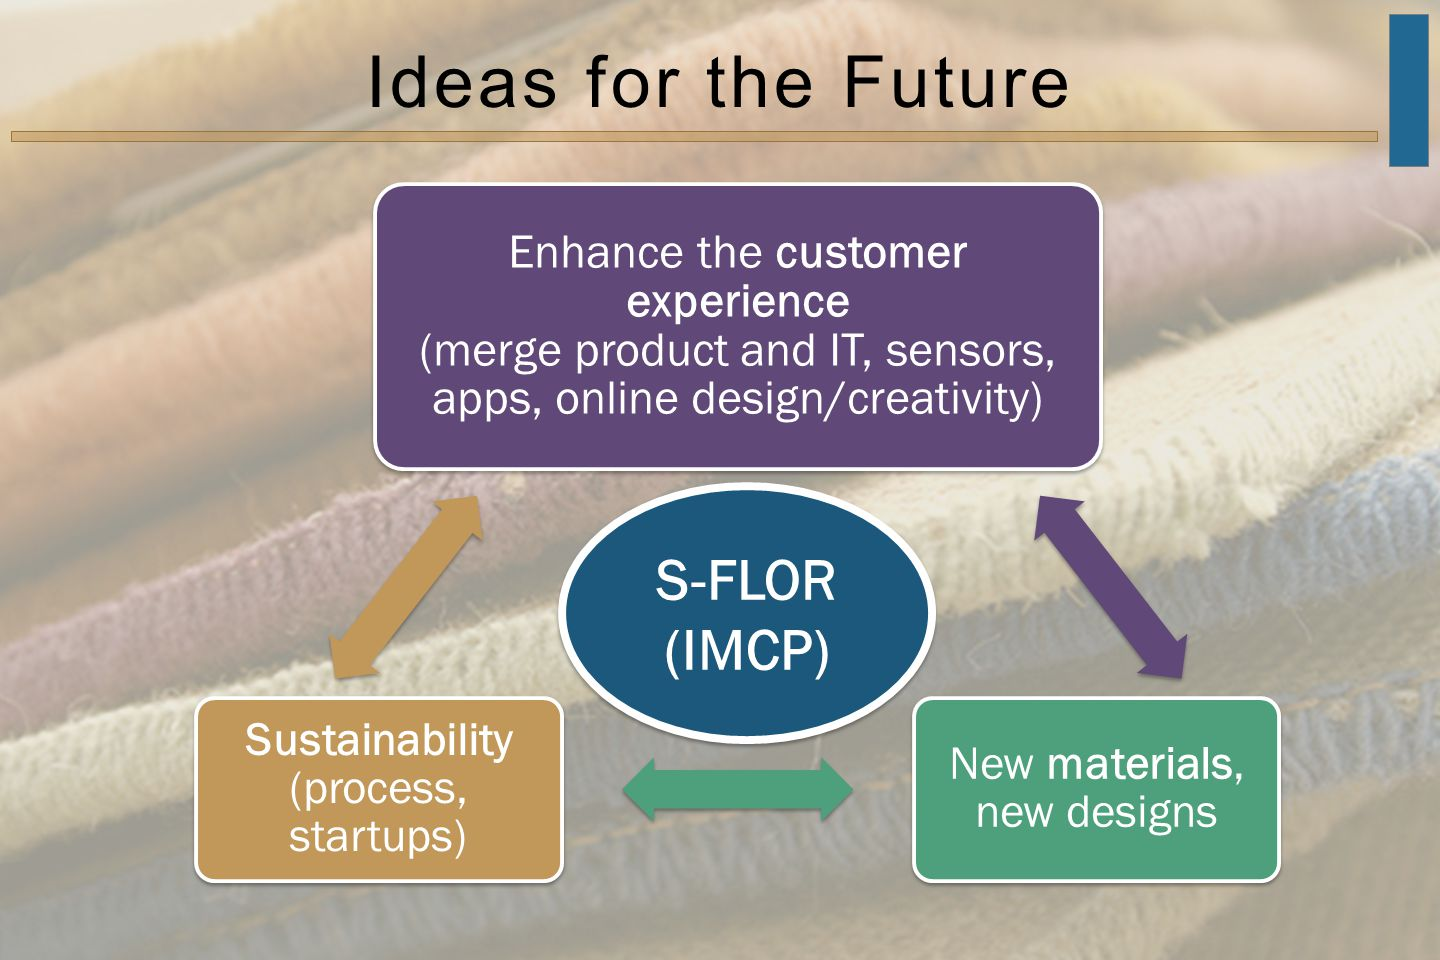 Ideas for the Future Enhance the customer experience (merge product and IT, sensors, apps, online design/creativity) New materials, new designs Sustainability (process, startups) S-FLOR (IMCP) S-FLOR (IMCP)